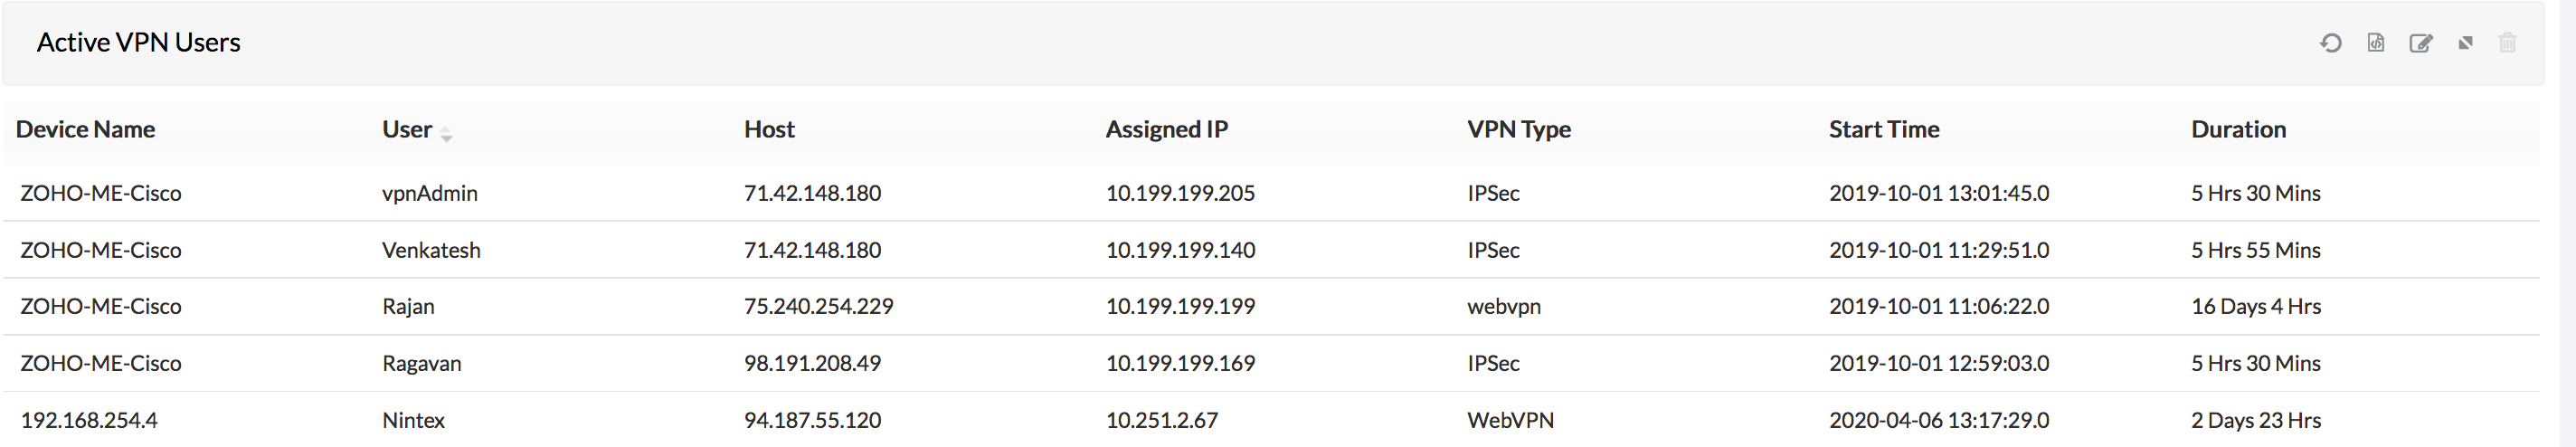 Monitor active VPN user sessions - Firewall Analyzer